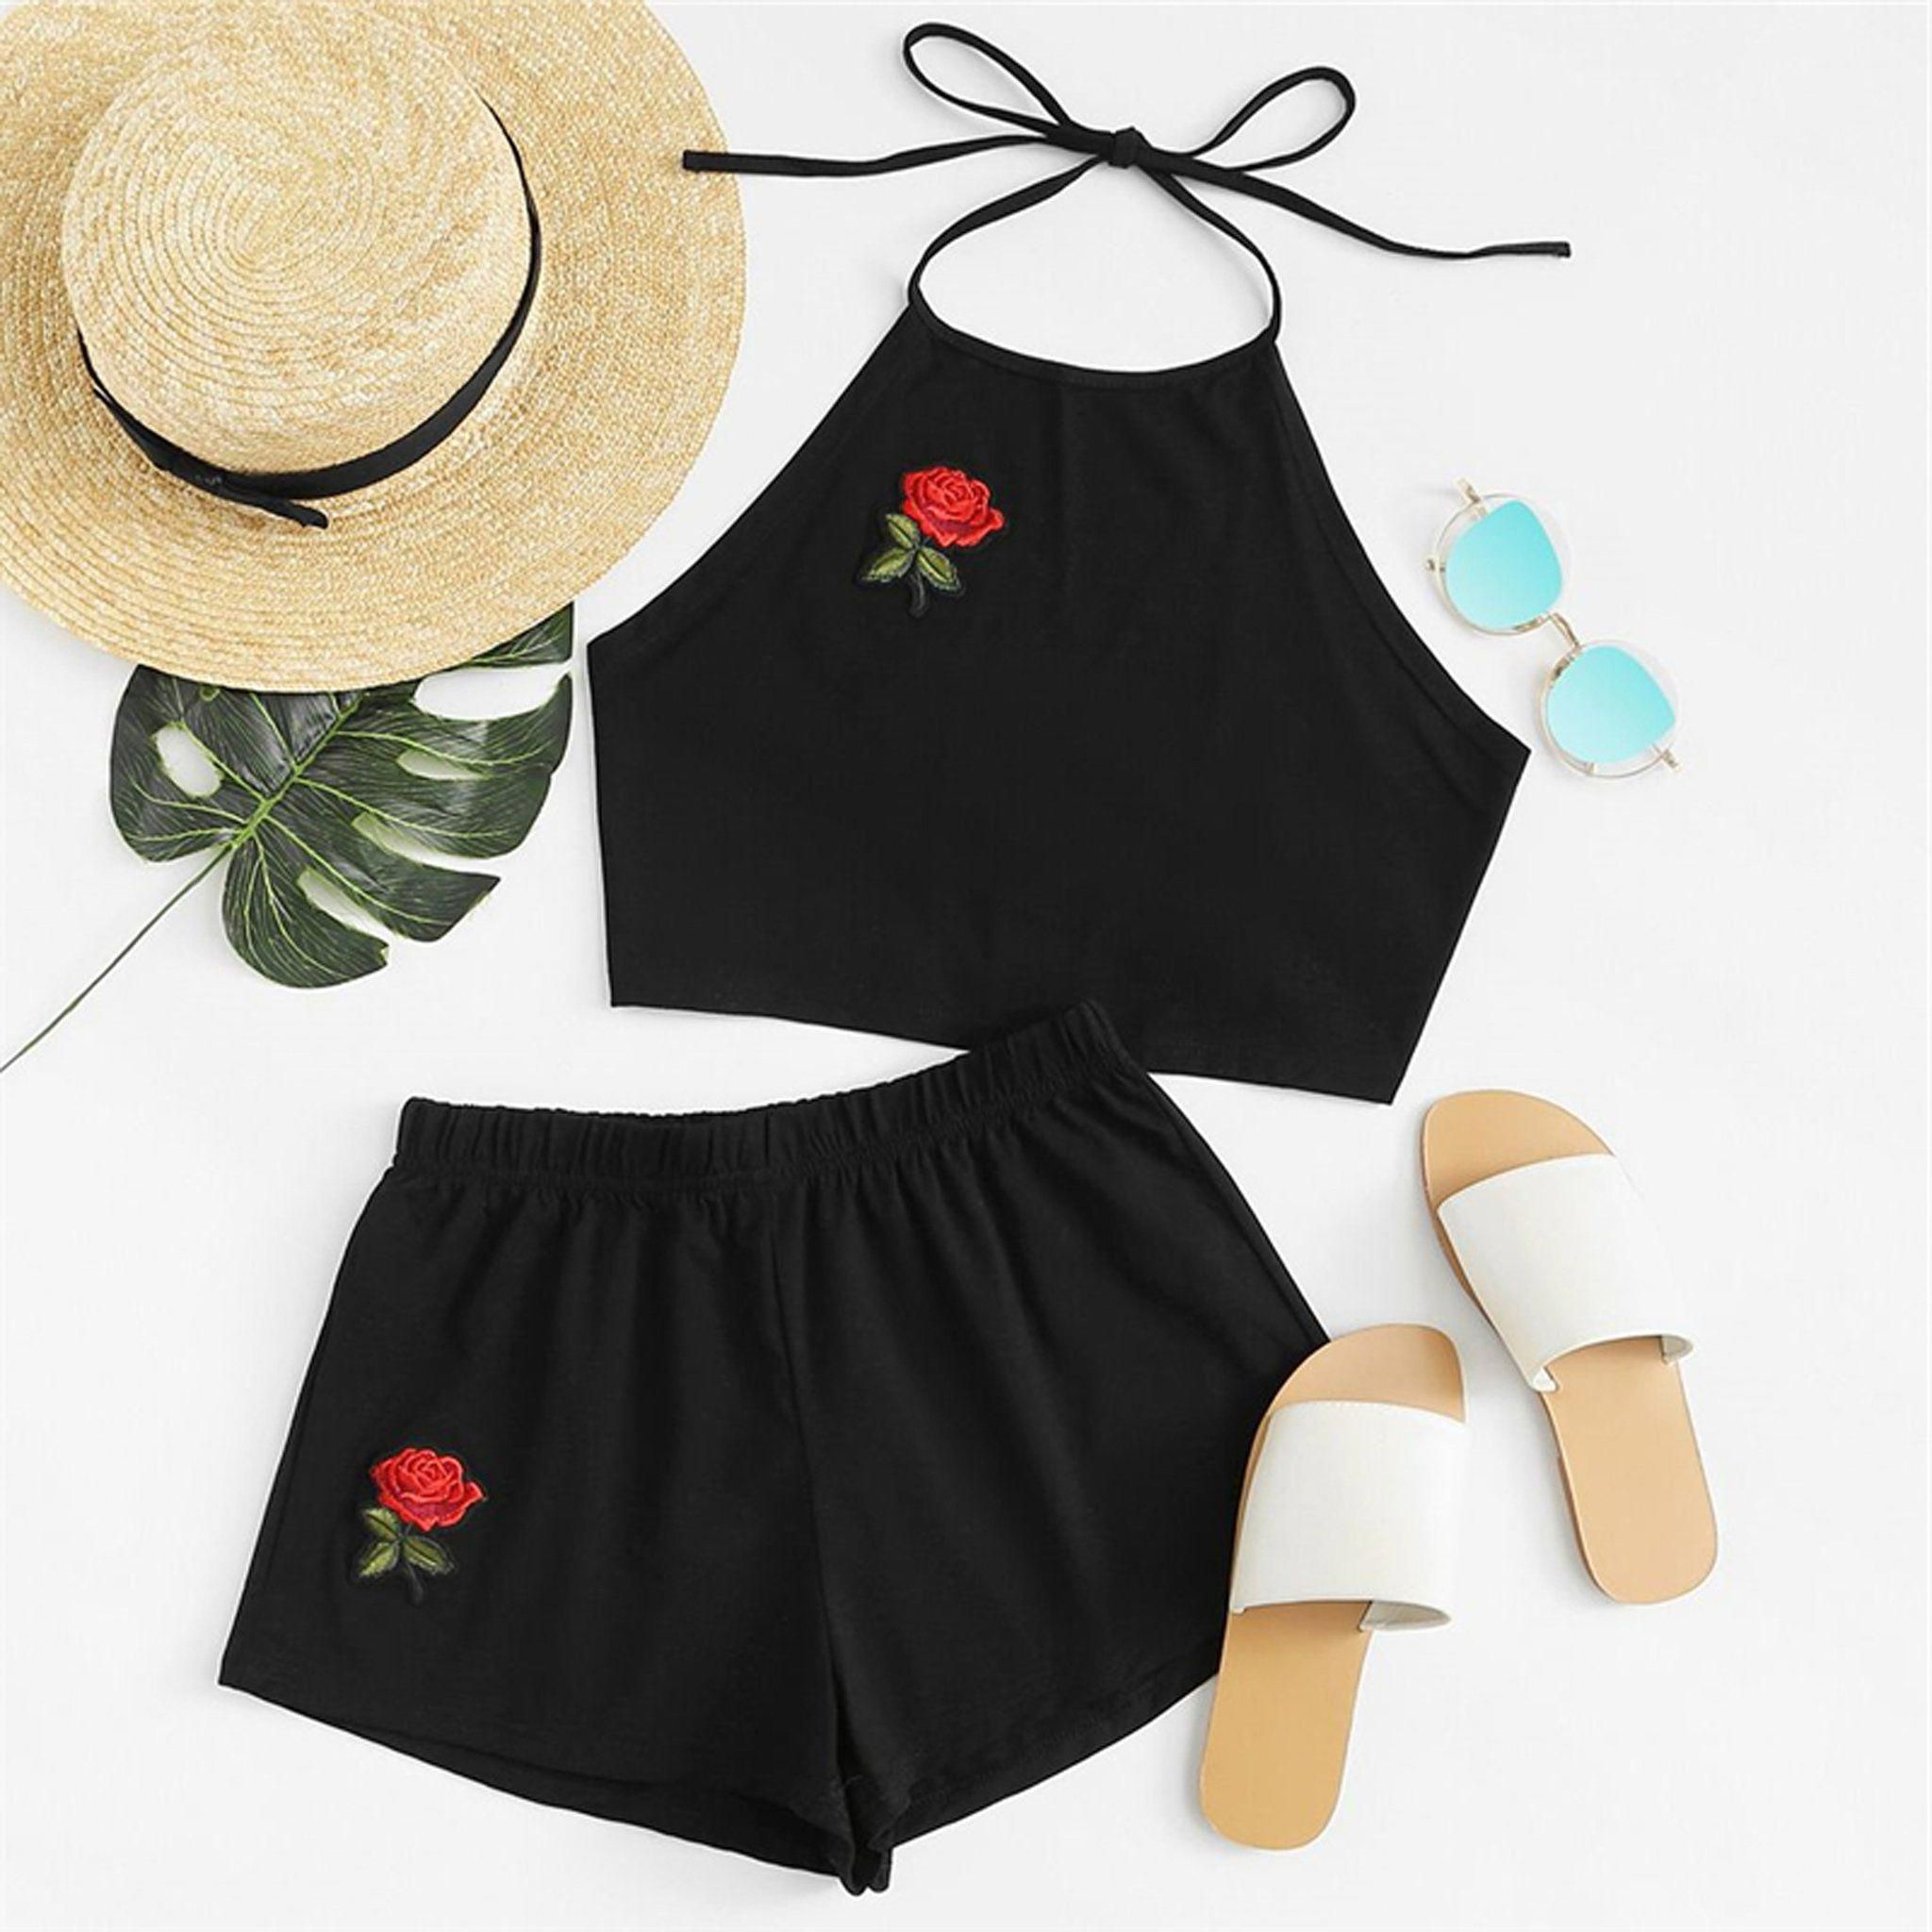 aeddea27c3f928 Cute Summer Outfits for Teen Girls - Casual Girly Rose Embroidered Beach  Halter Top with High Waisted Shorts Matching Set in Black - www.